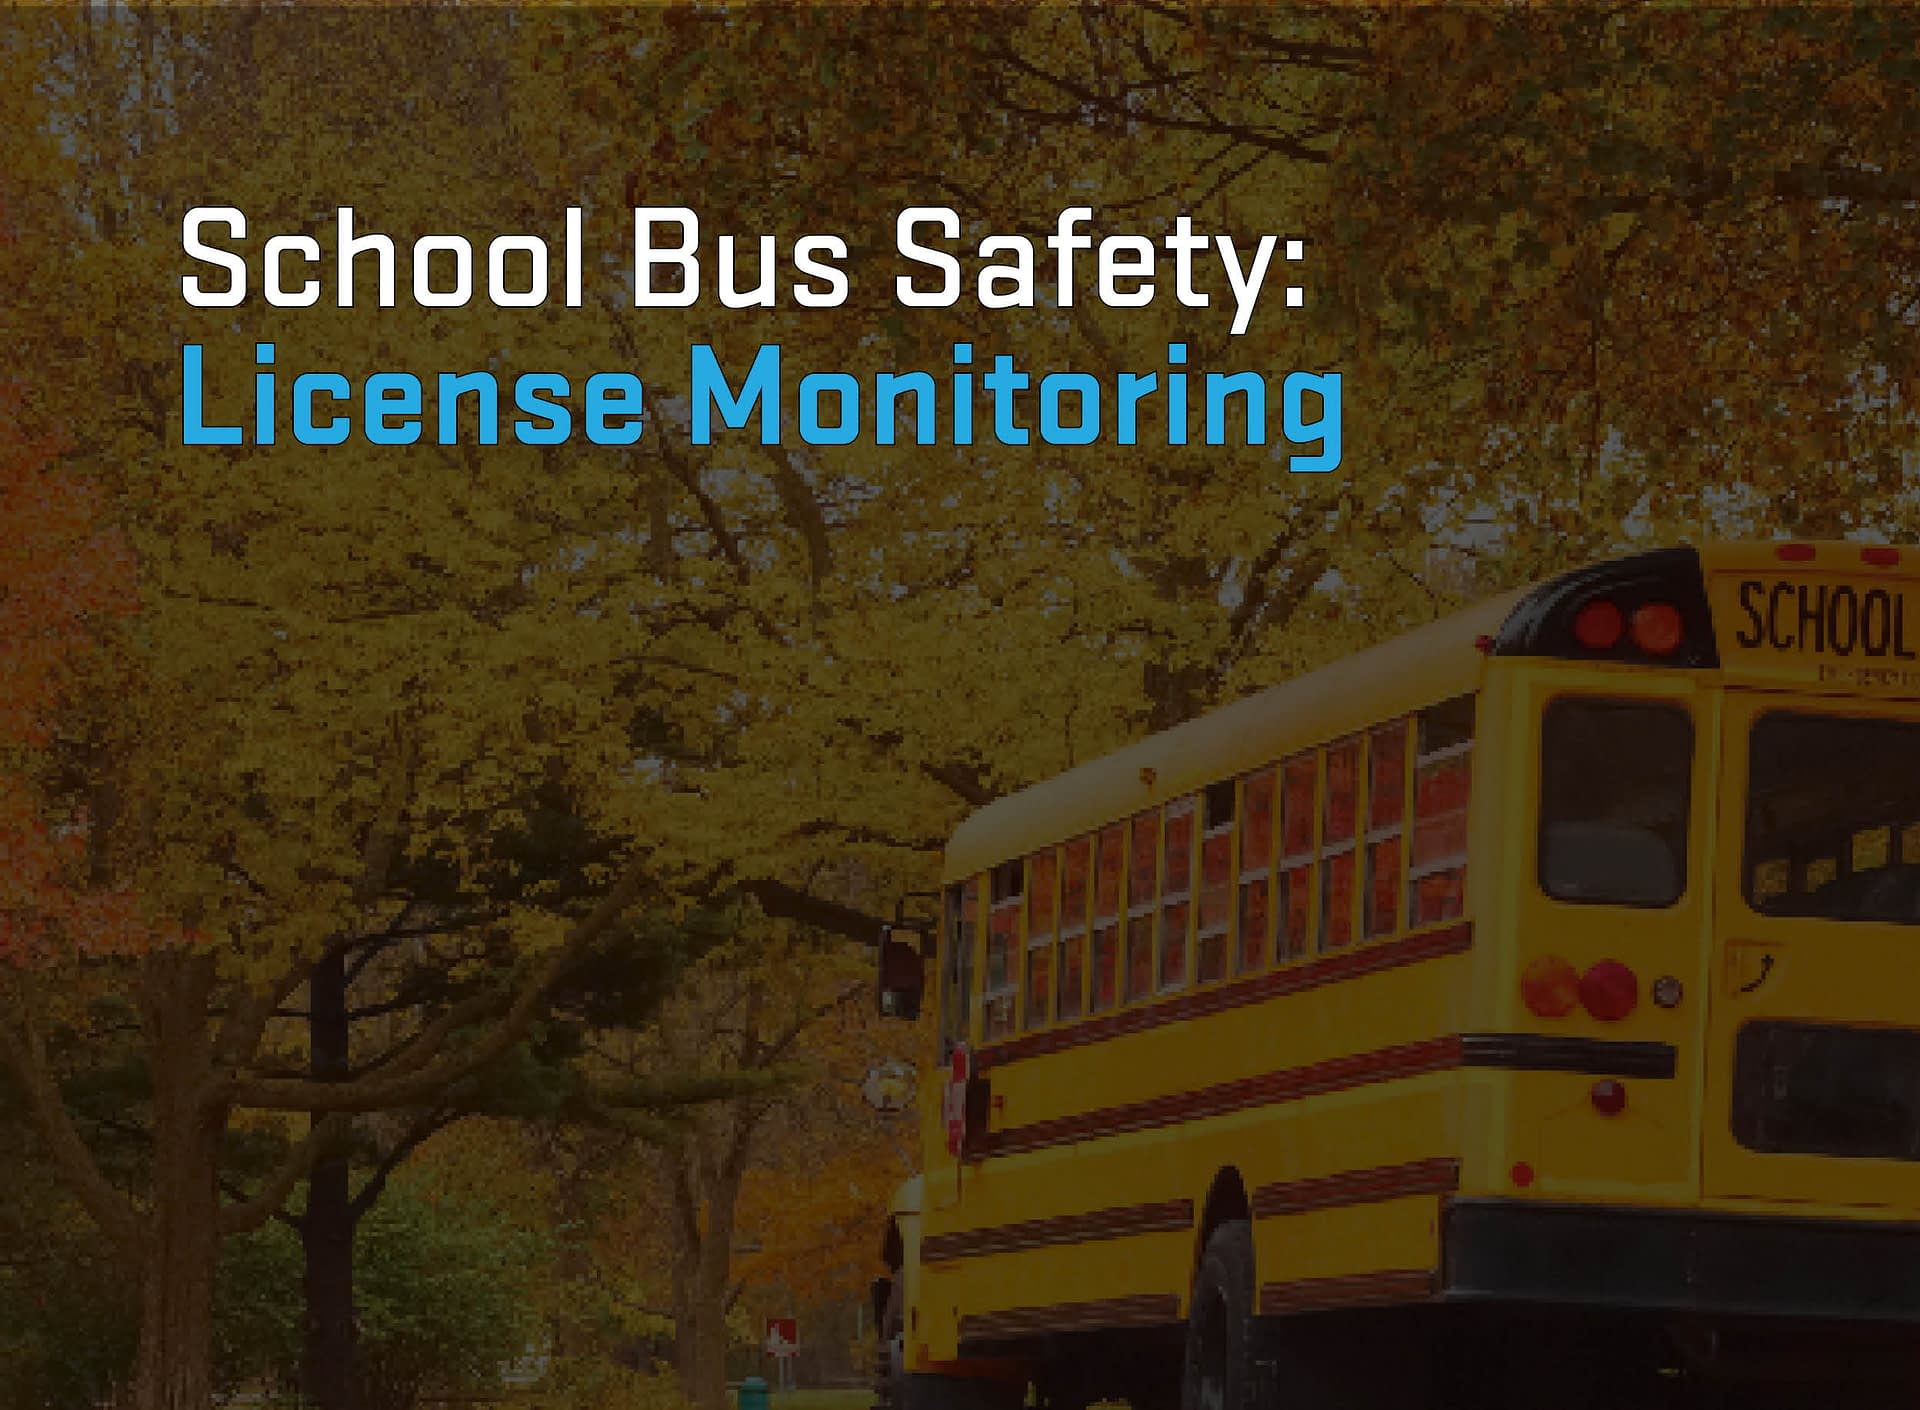 How to Increase School Bus Safety with Continuous License Monitoring